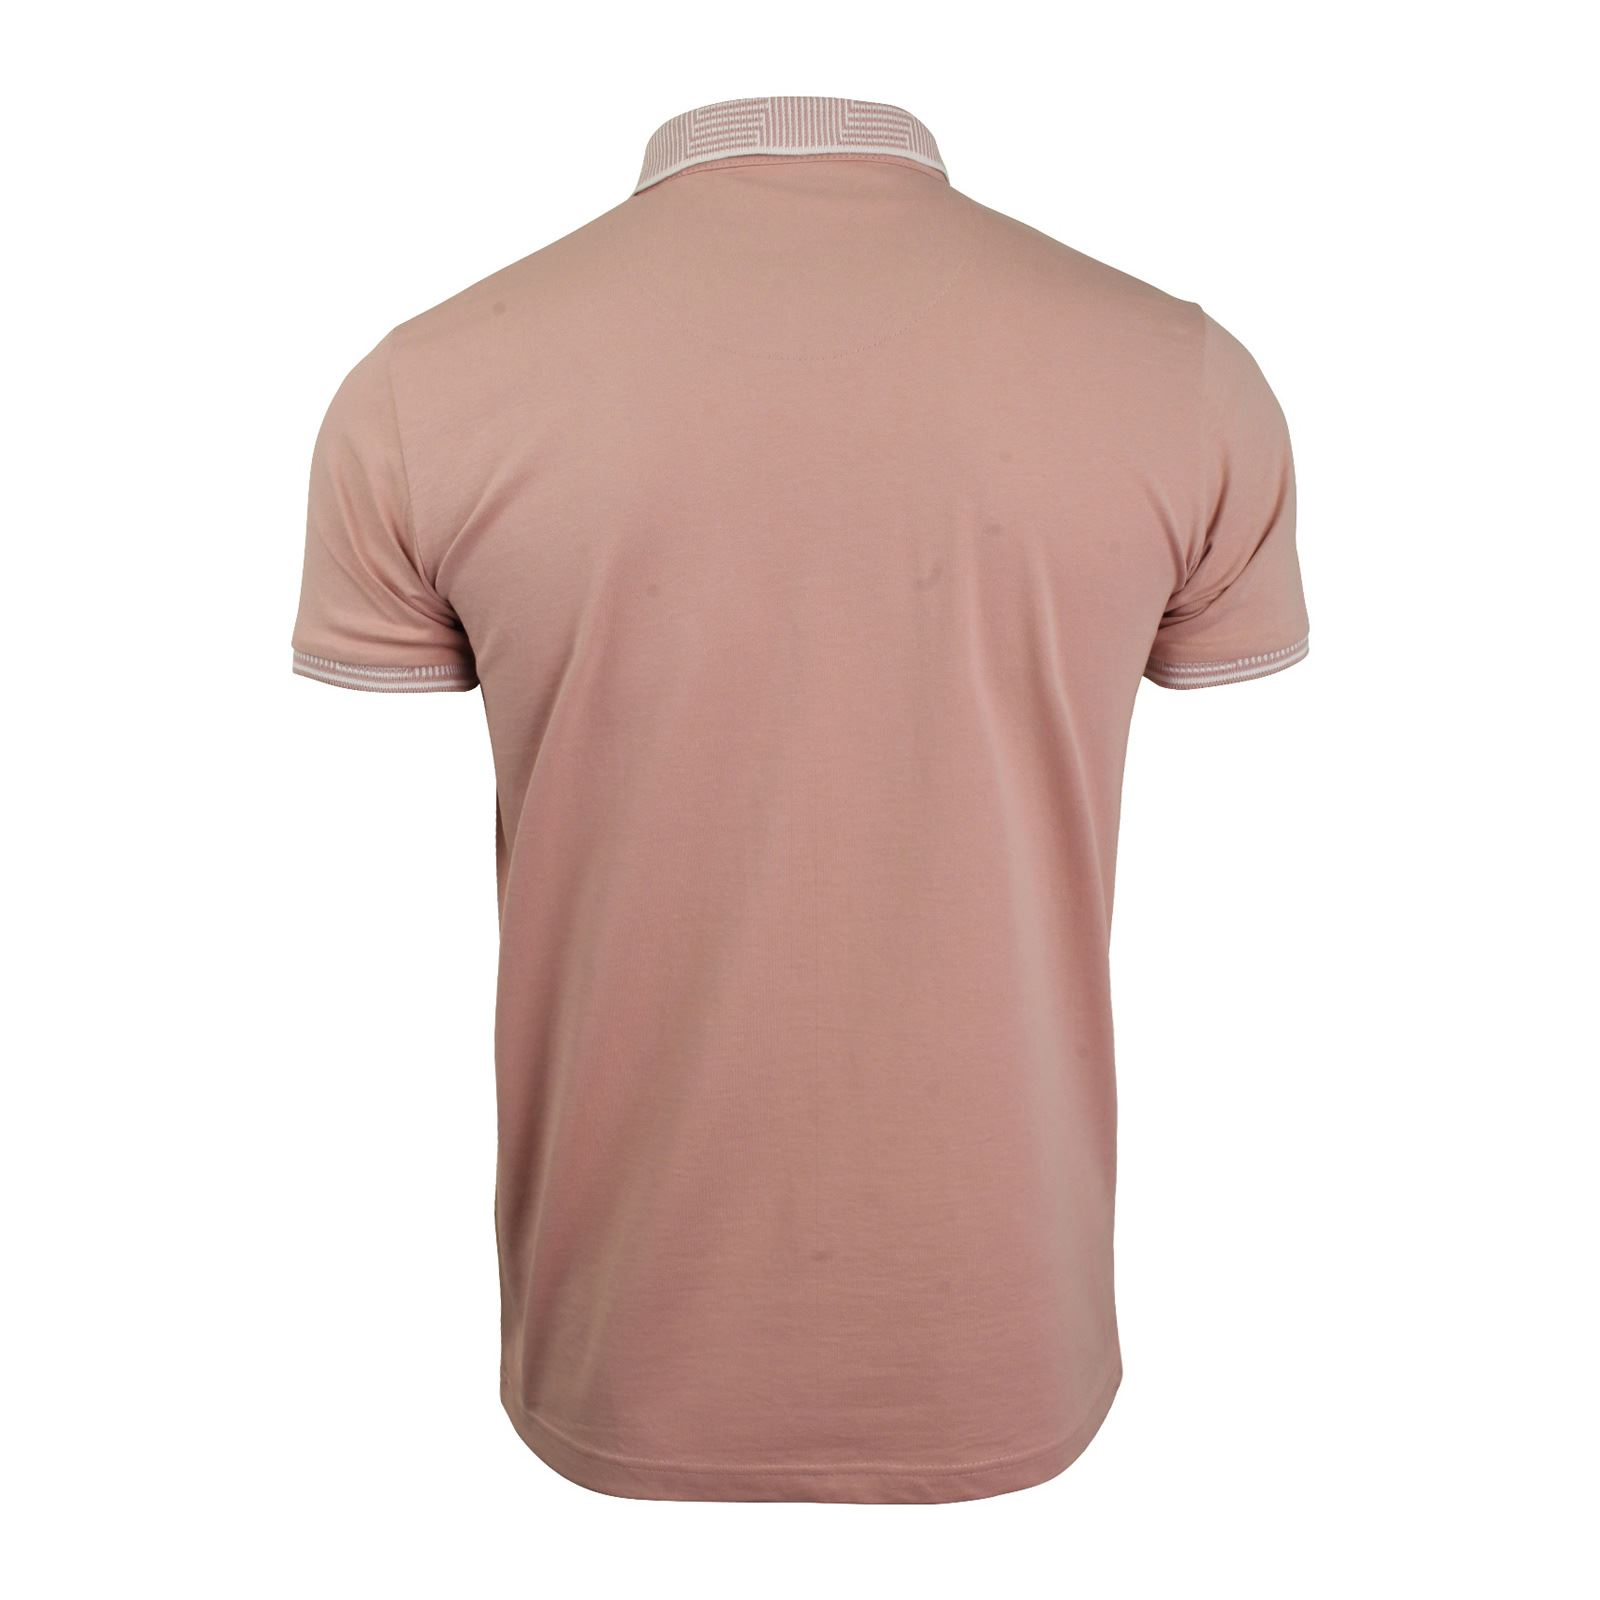 Mens-Polo-T-Shirt-Brave-Soul-Glover-Cotton-Collared-Short-Sleeve-Casual-Top thumbnail 9